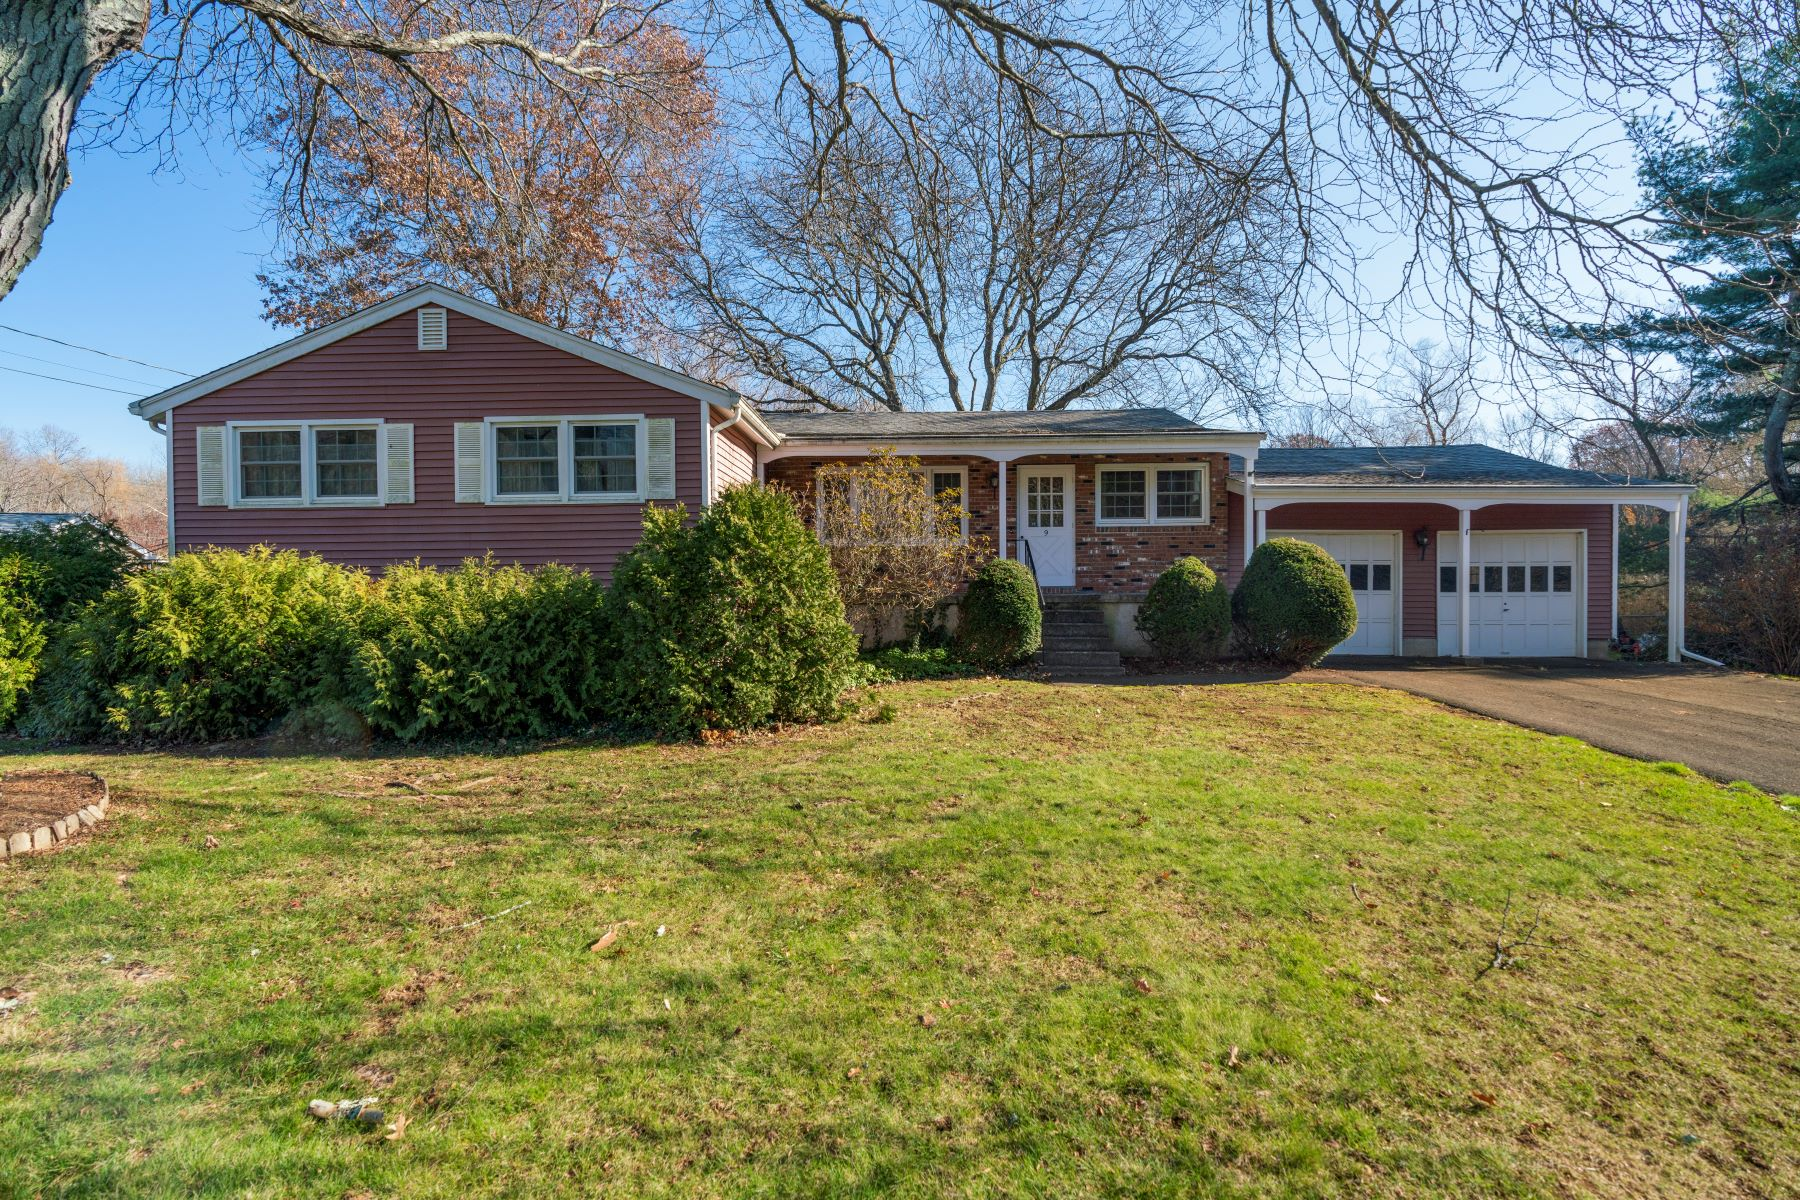 Single Family Homes for Sale at 9 Lea Road North Branford, Connecticut 06471 United States